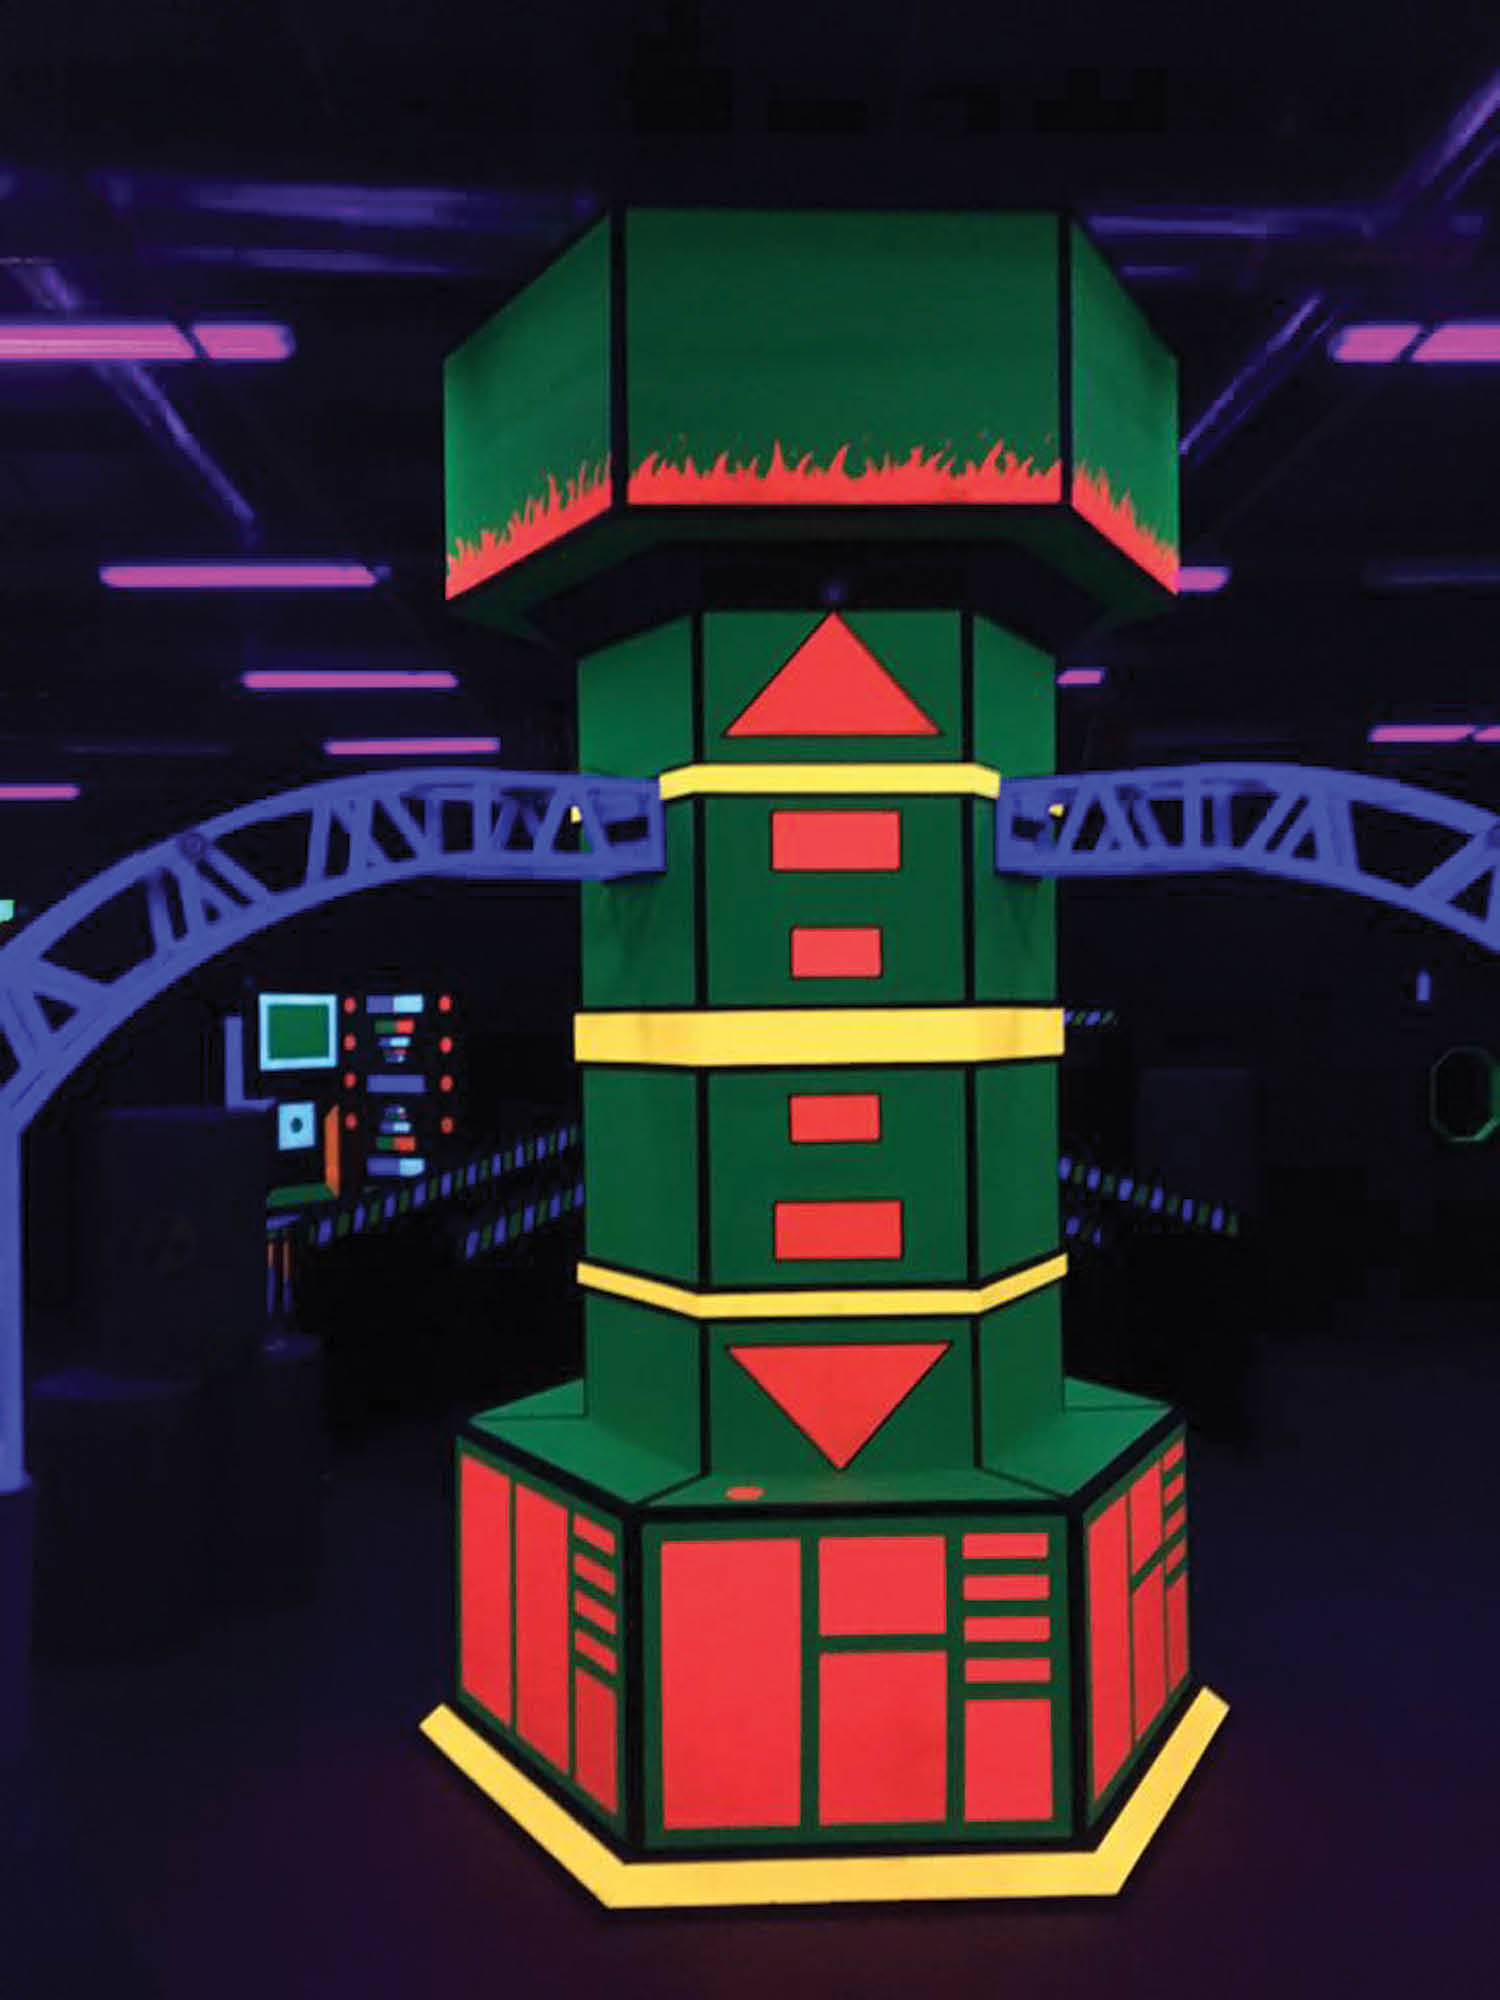 laser tag event coupons save on laser tag save on family fun family night savings parties save a laneglo bowl laneglow bowling laneglo bowling